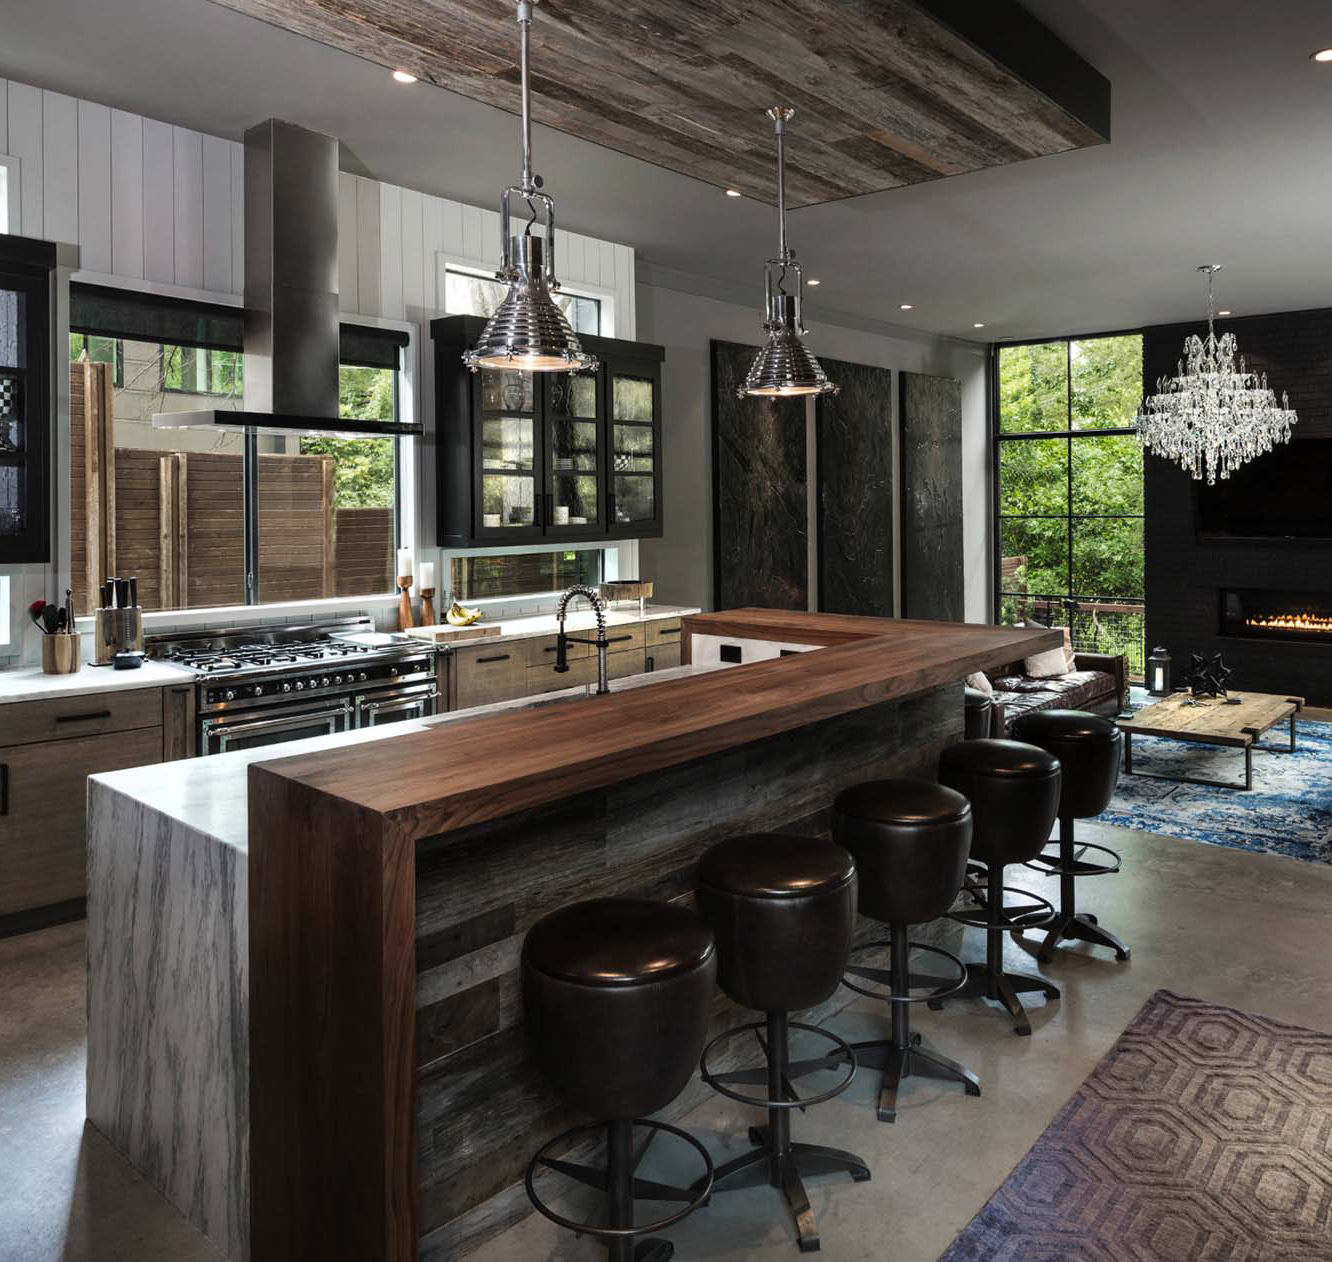 Urban Contemporary Kitchen with an Industrial Twist